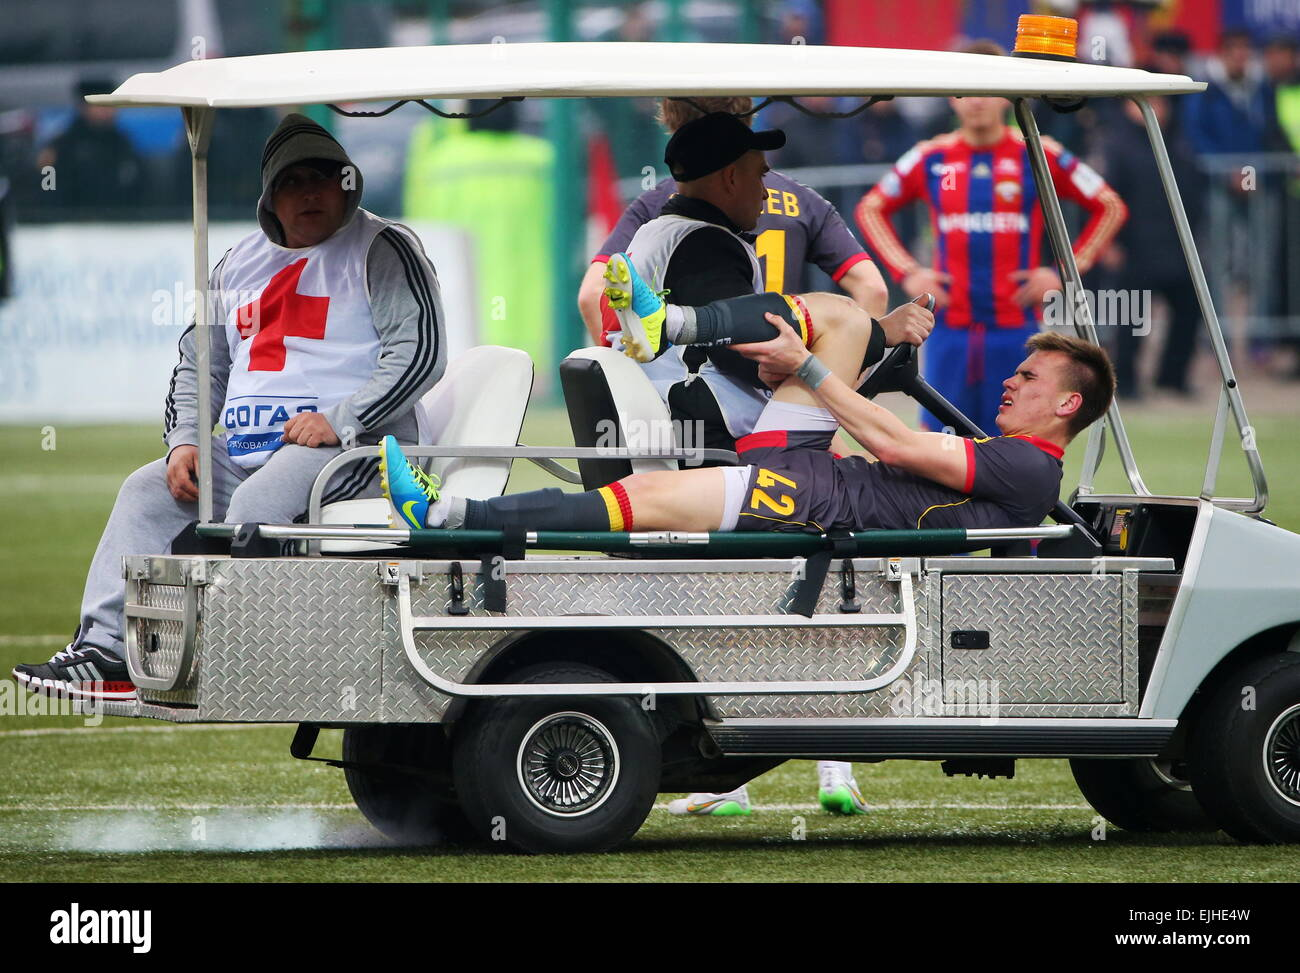 Moscow, Russia. 21st Mar, 2015. Arsenal's Yevgeny Yezhov got injured during the 2014/15 Season Russian Premier - Stock Image